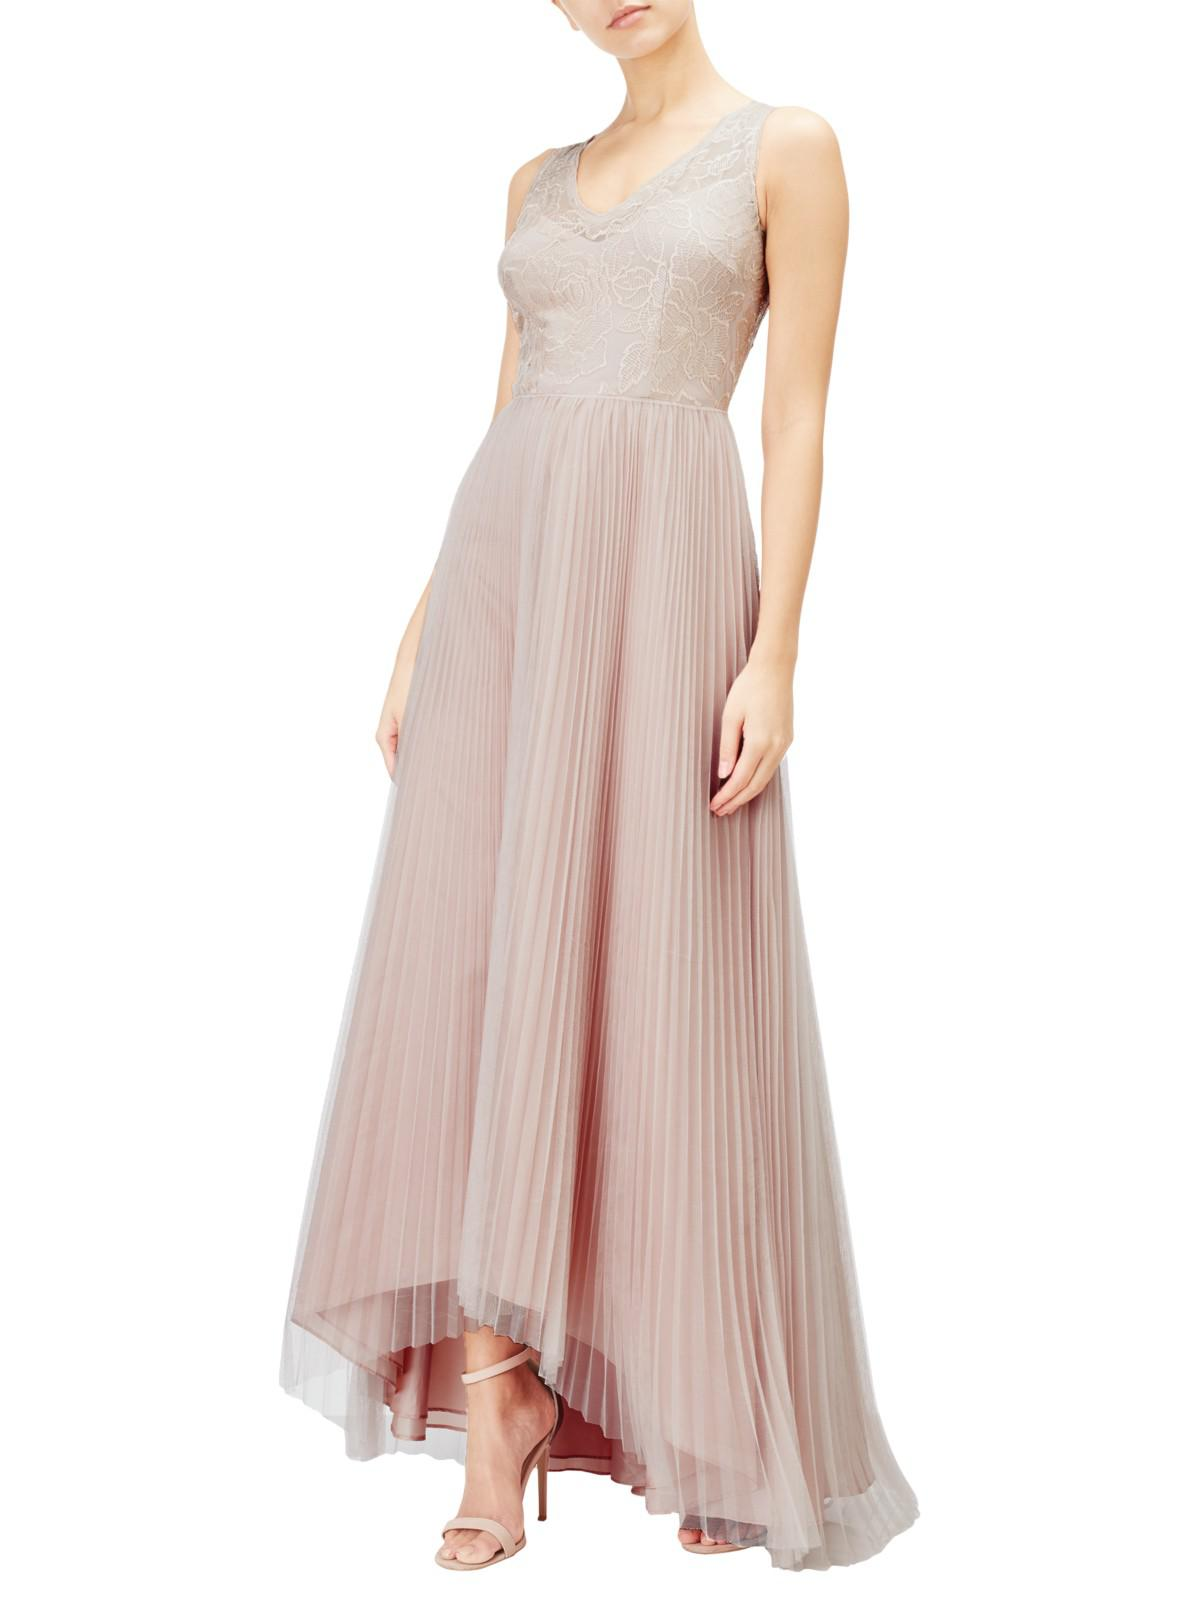 adrianna papell Blush Pink Sequin Lace Bodice High Low Tulle Dress